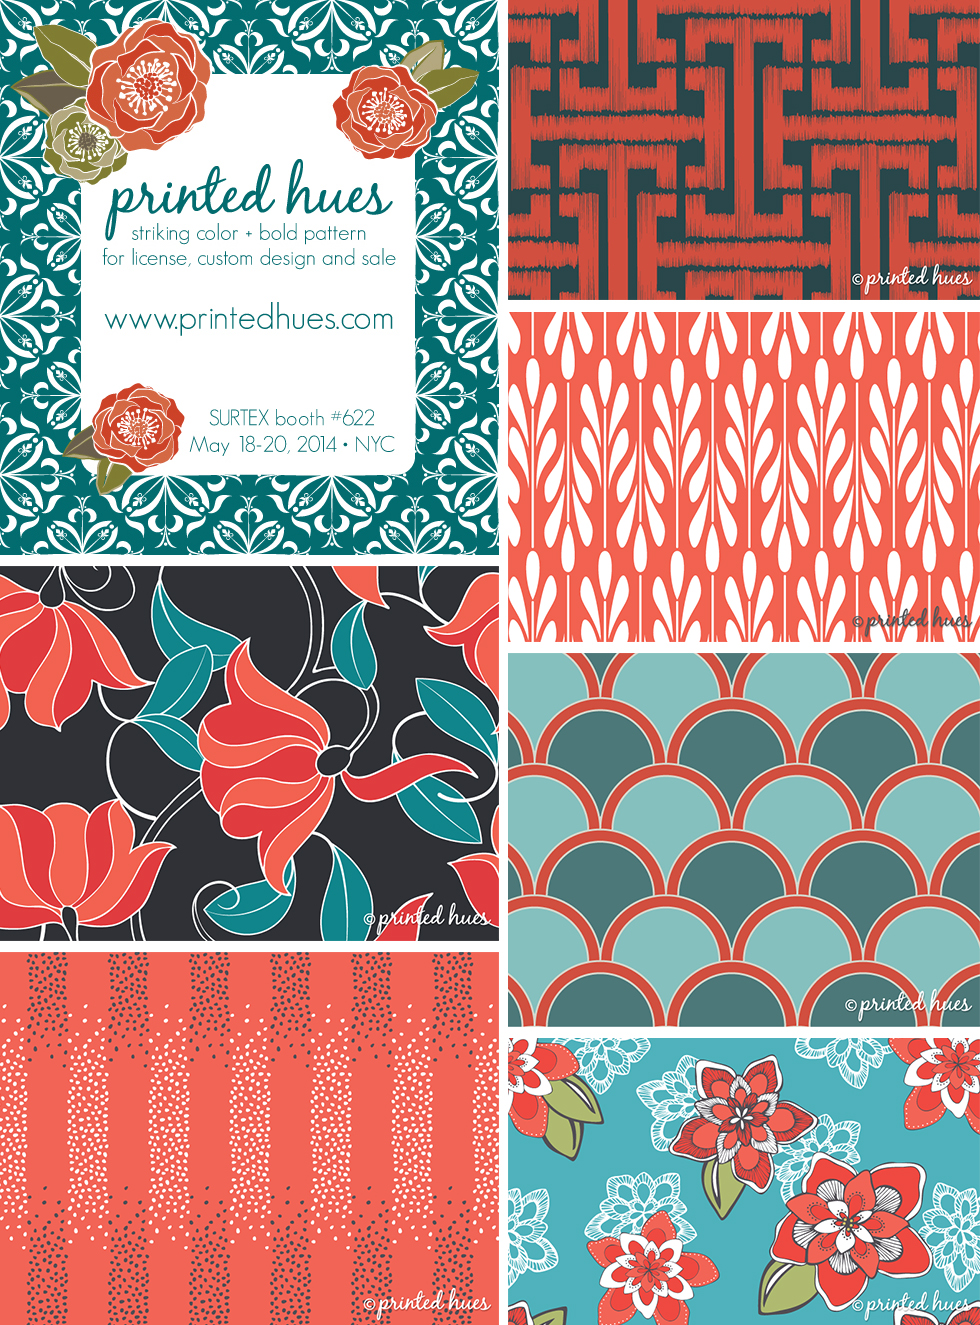 PrintedHues_Surtex